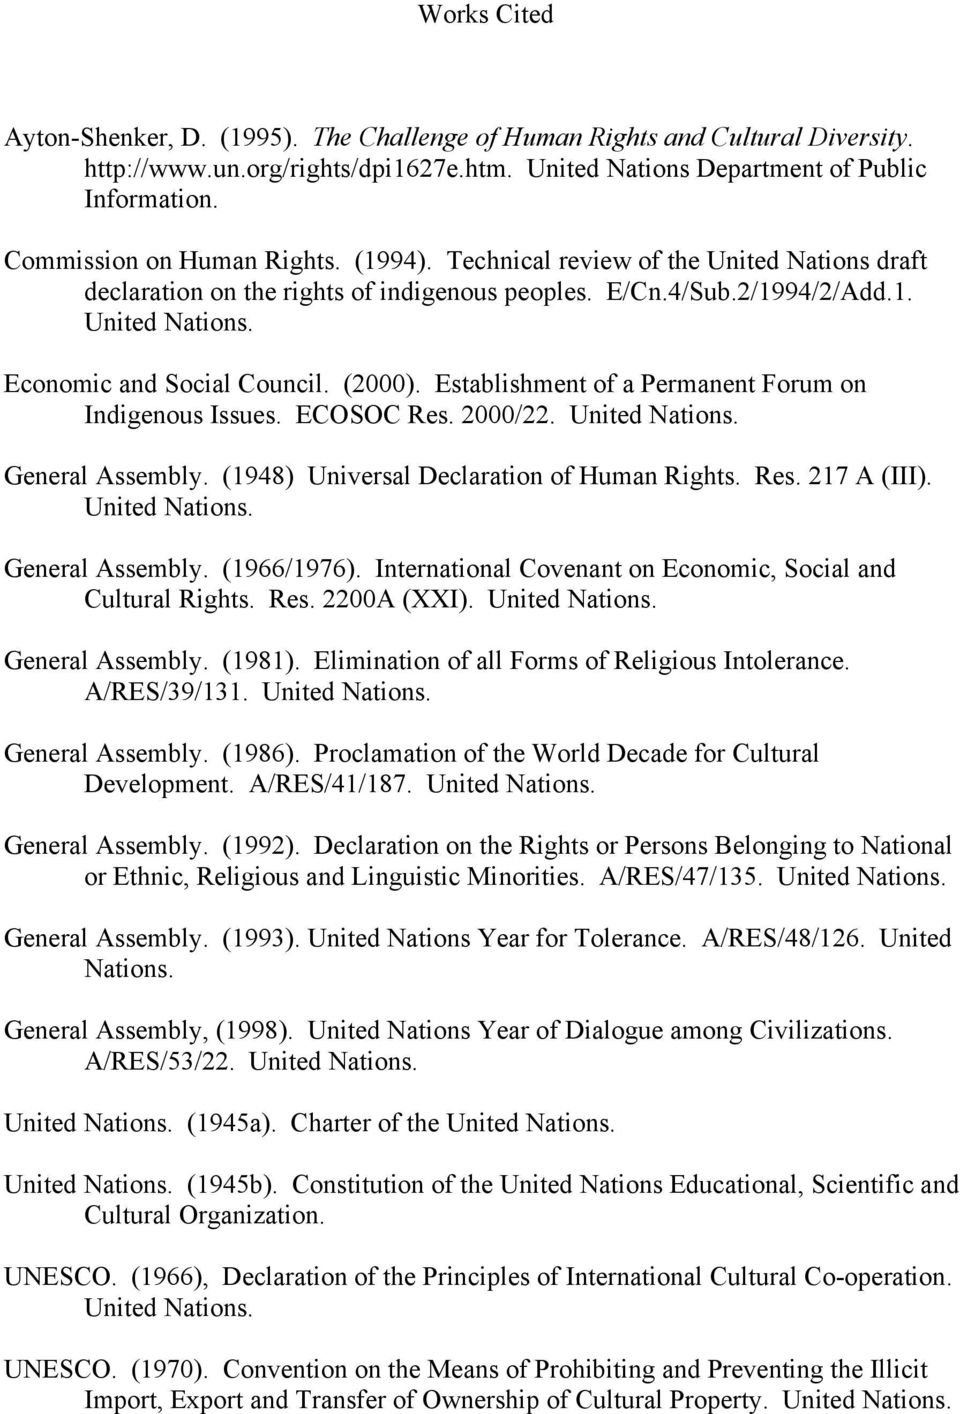 (2000). Establishment of a Permanent Forum on Indigenous Issues. ECOSOC Res. 2000/22. United Nations. General Assembly. (1948) Universal Declaration of Human Rights. Res. 217 A (III). United Nations. General Assembly. (1966/1976).